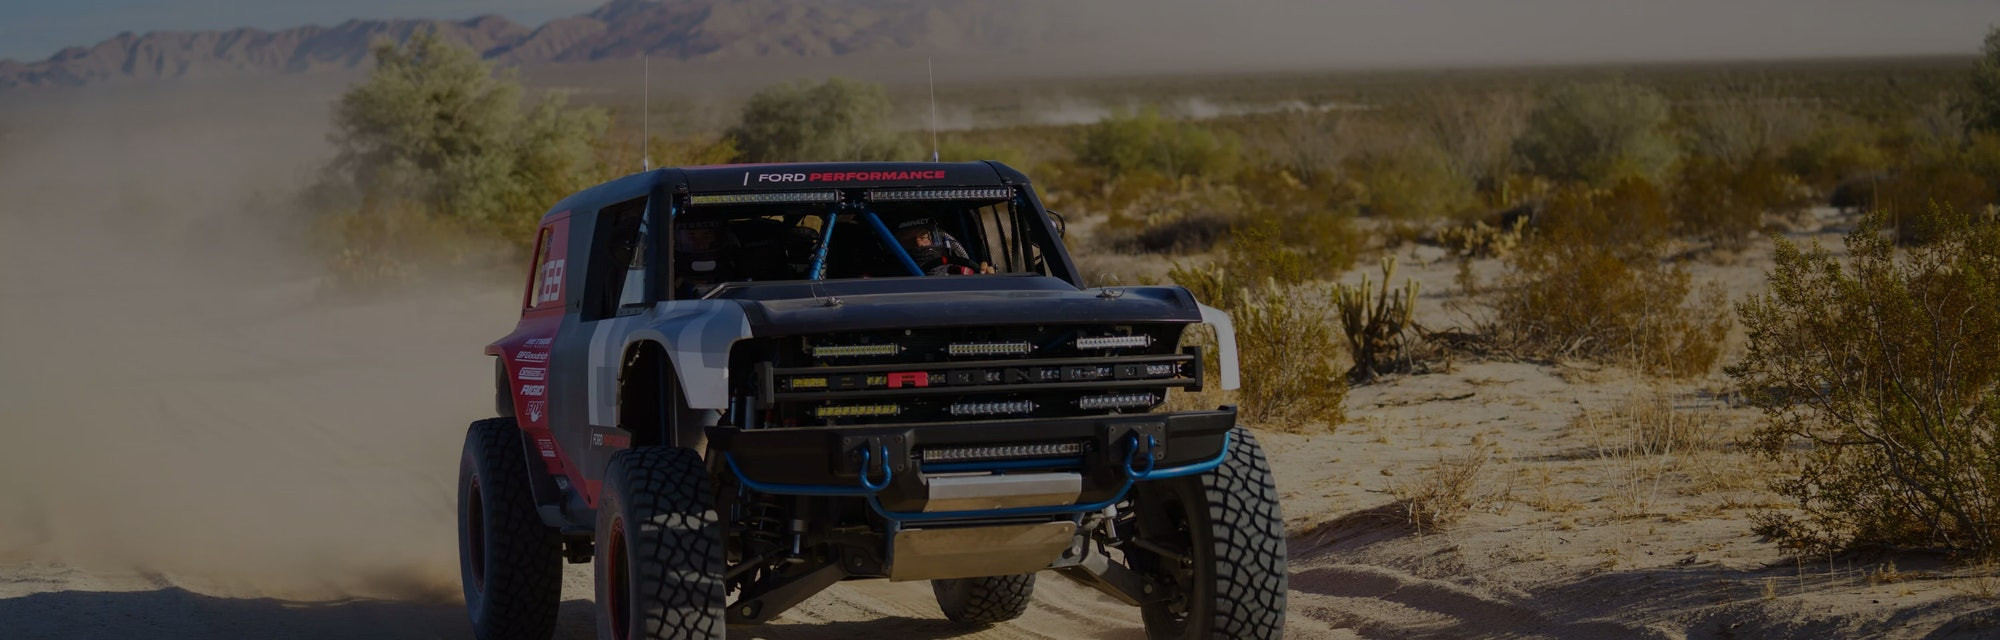 Ford Bronco R racing truck.